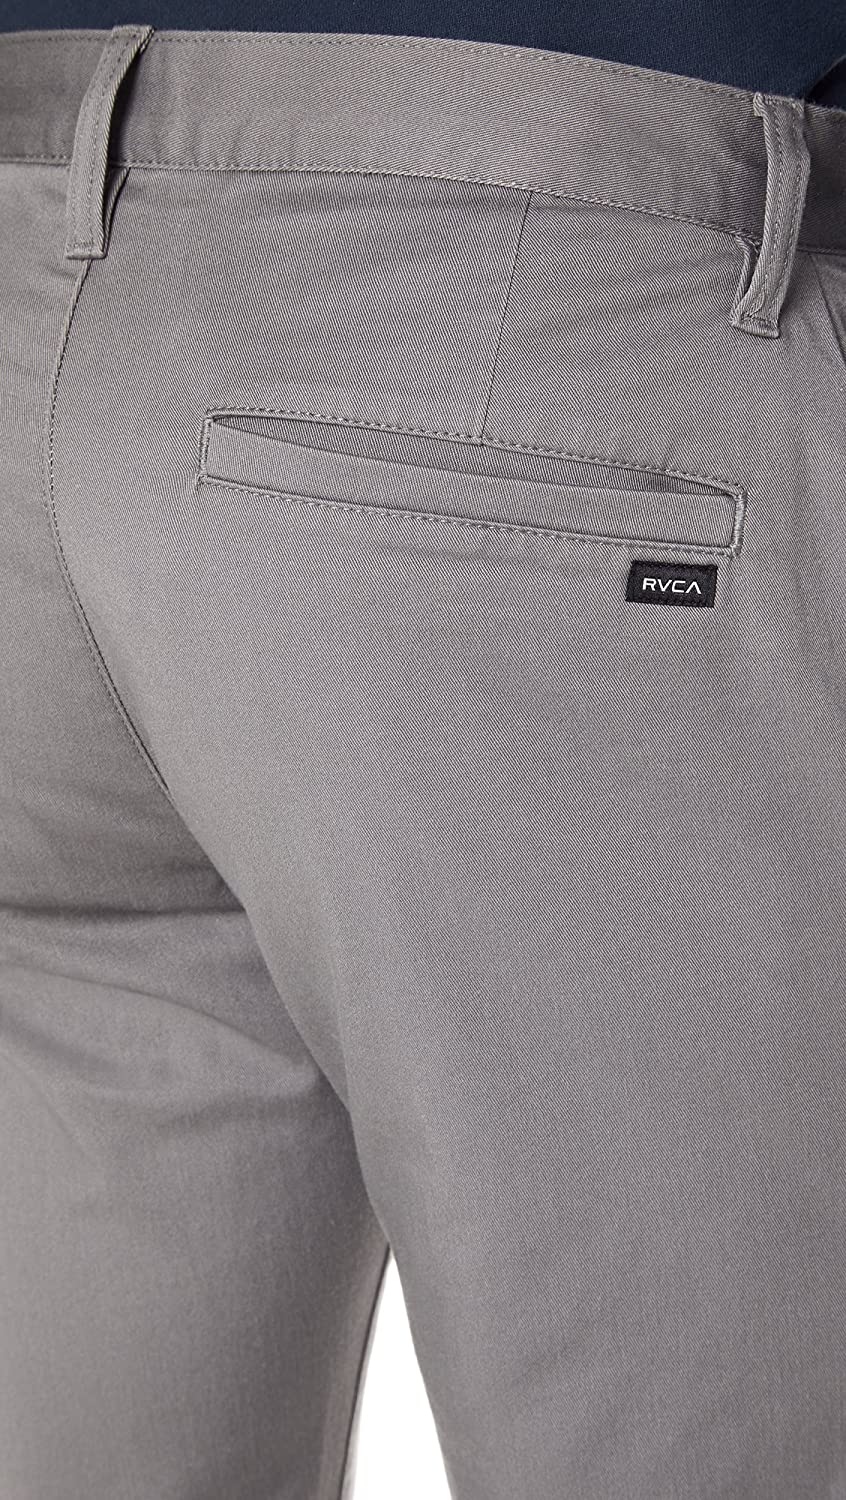 RVCA Mens Weekend Stretch Pants